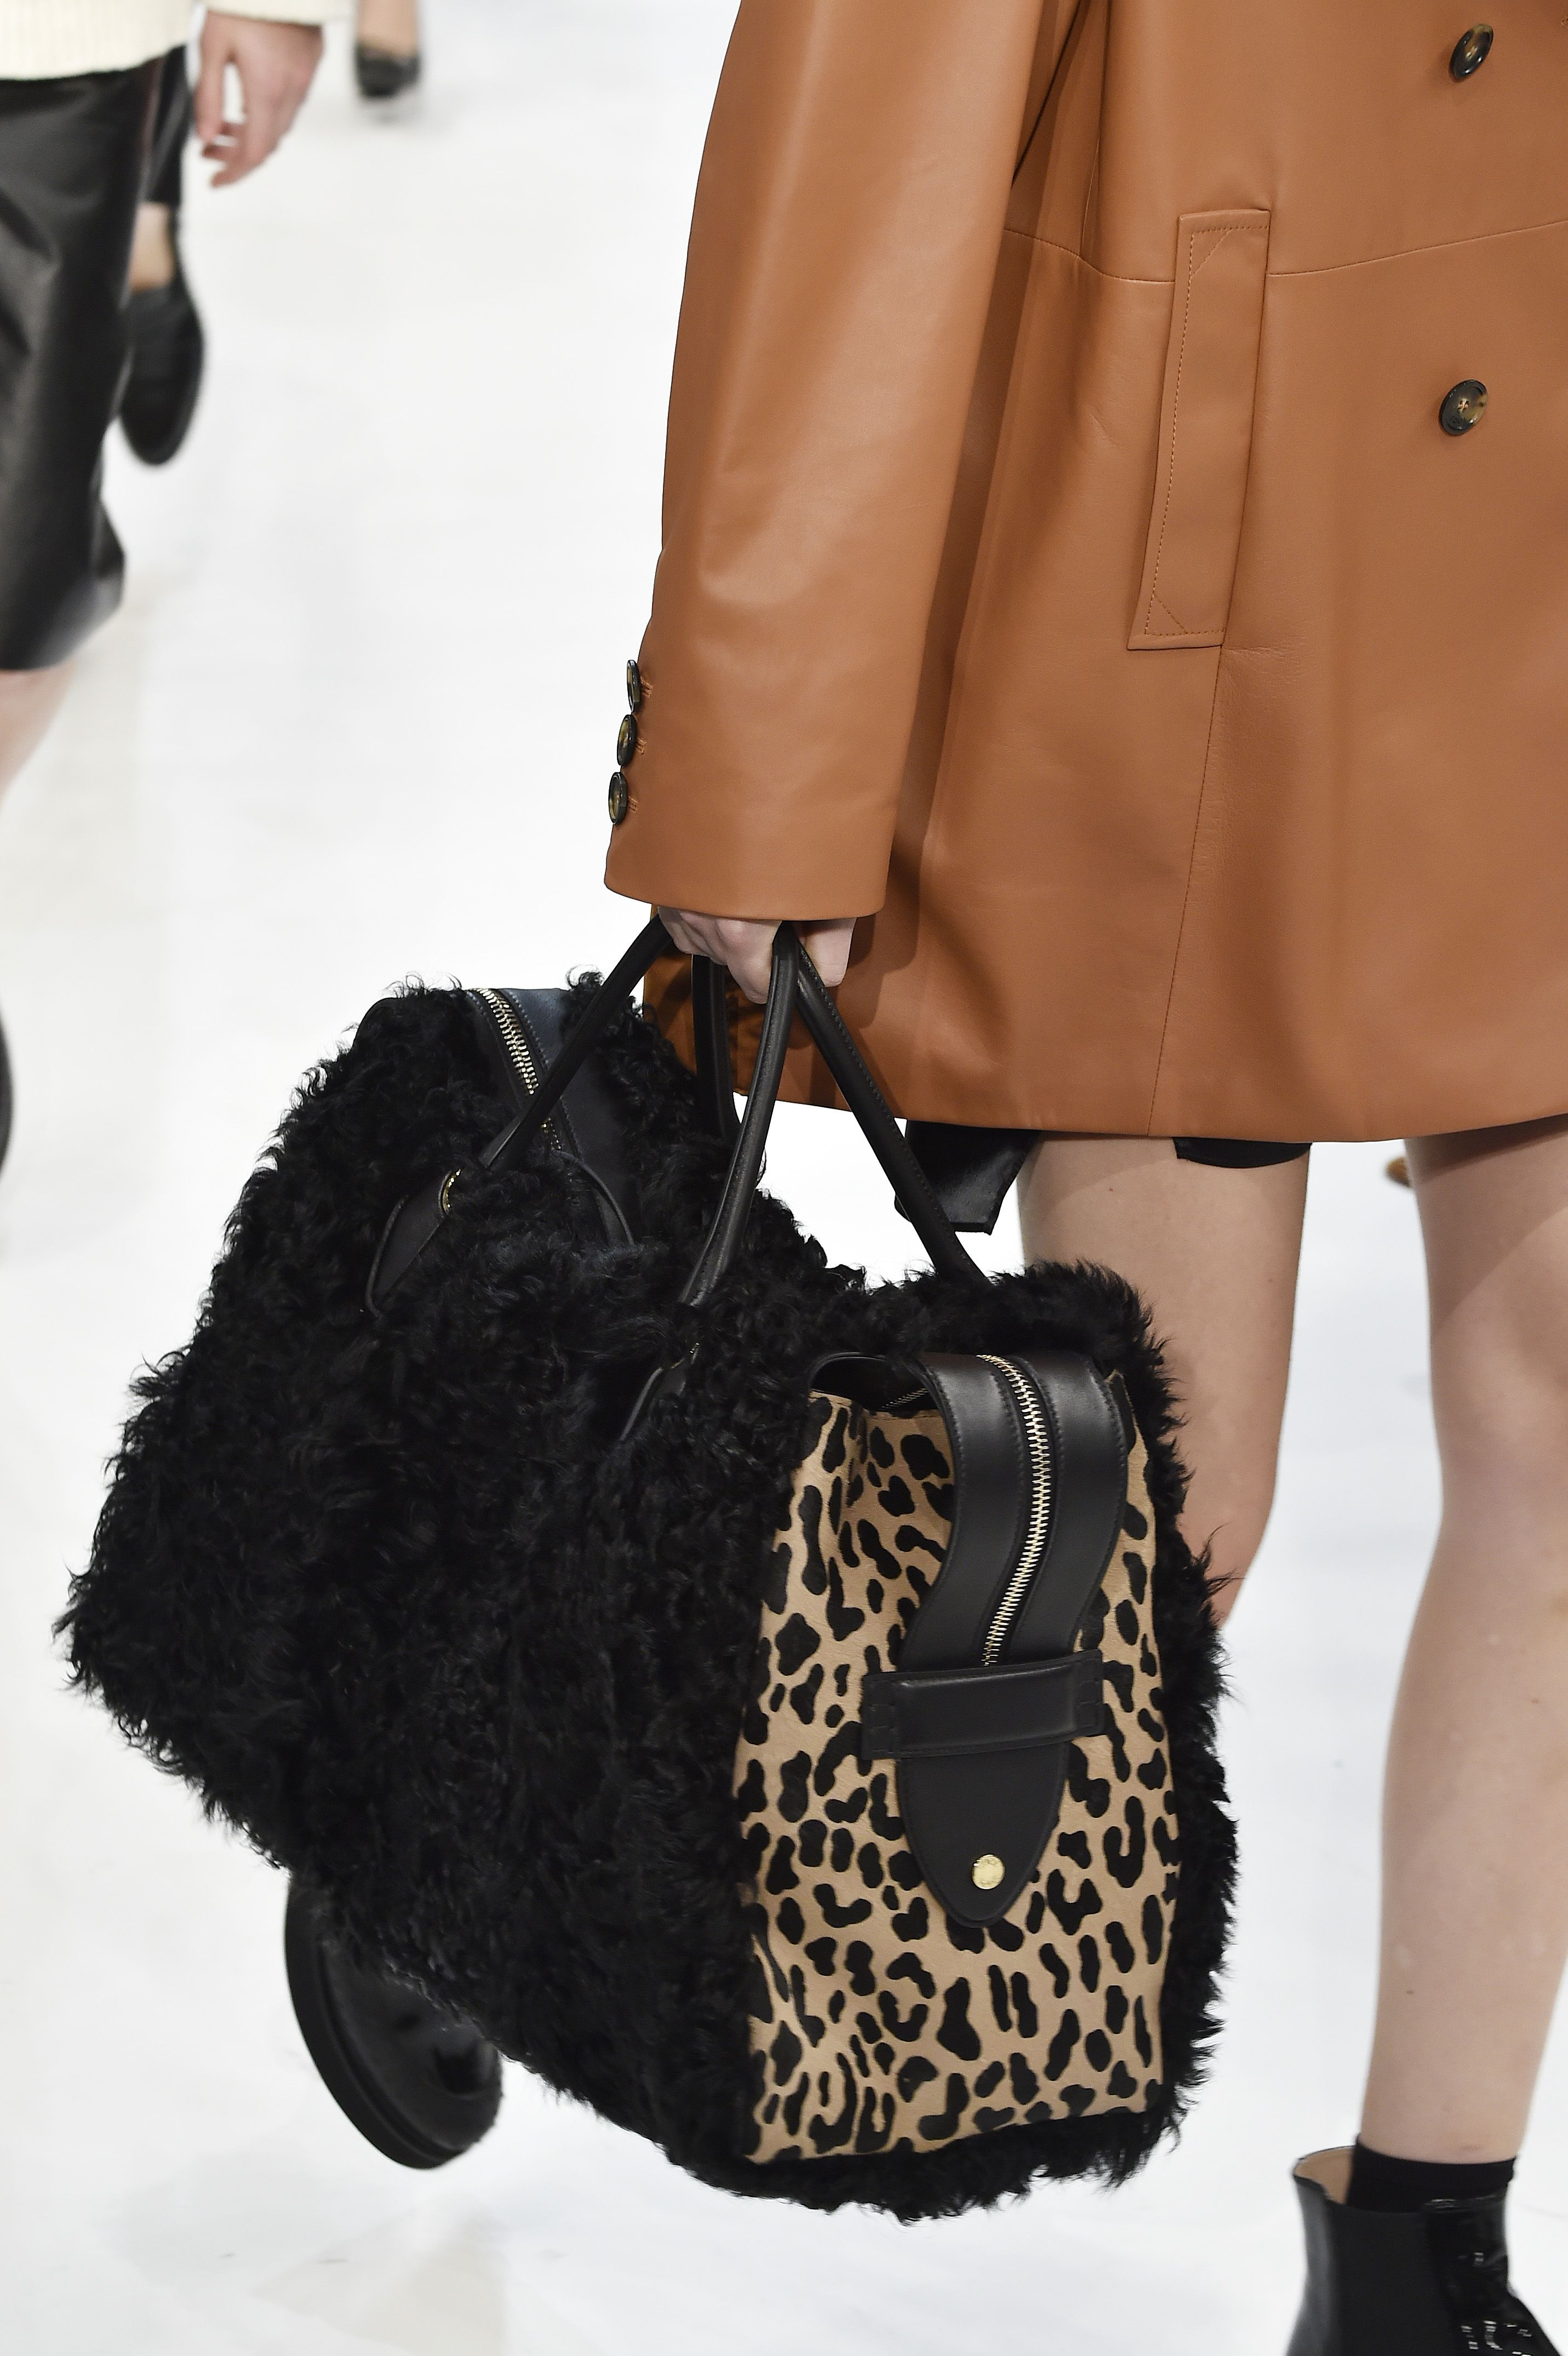 d13381ab3786 Fall 2019 Bag and Purse Trends - Best Bags on the Fall 2019 Runways